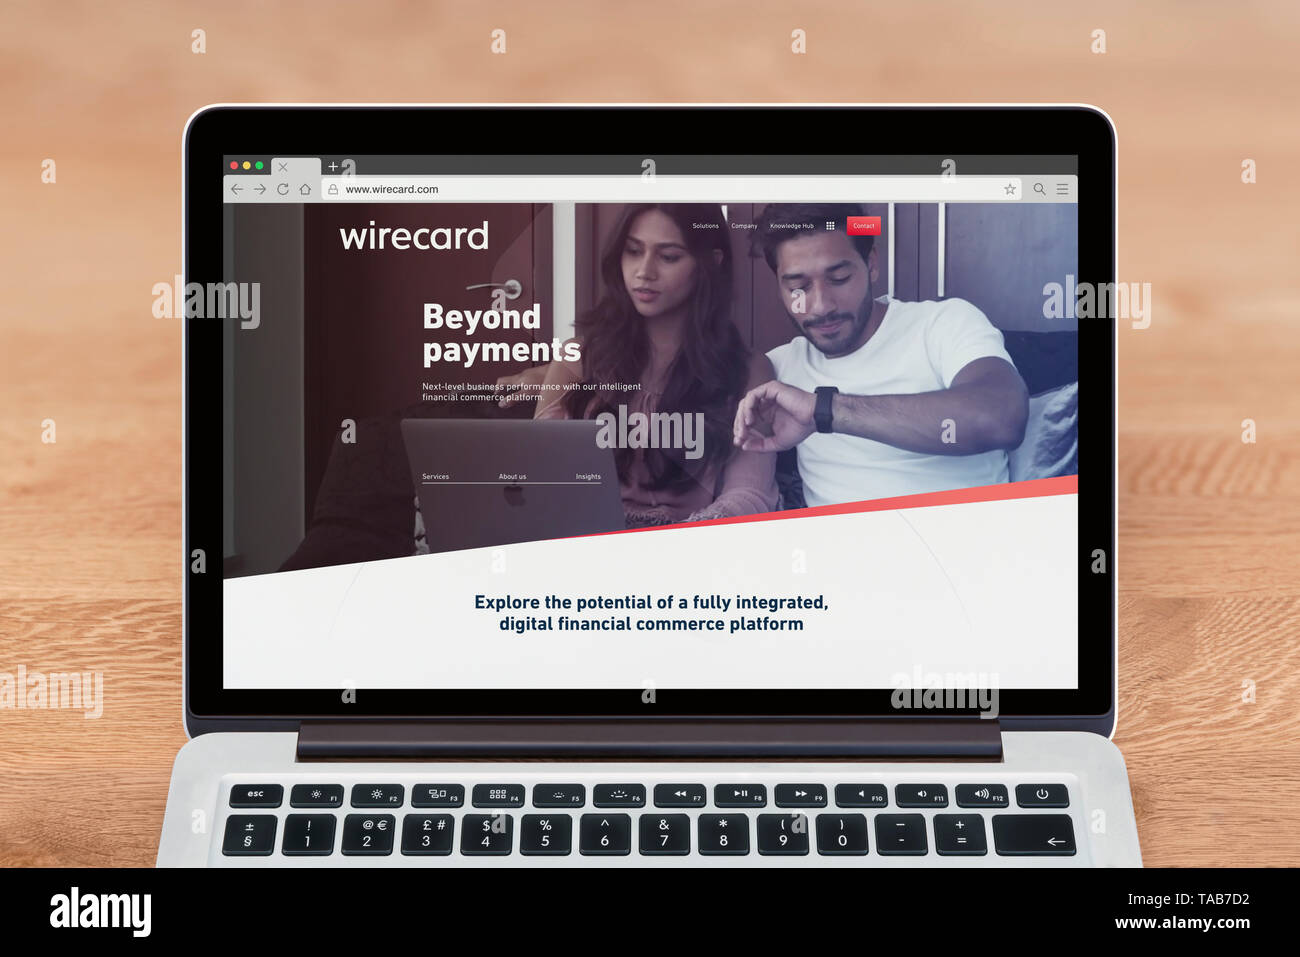 An Apple Macbook displays the Wirecard website (Editorial use only). - Stock Image